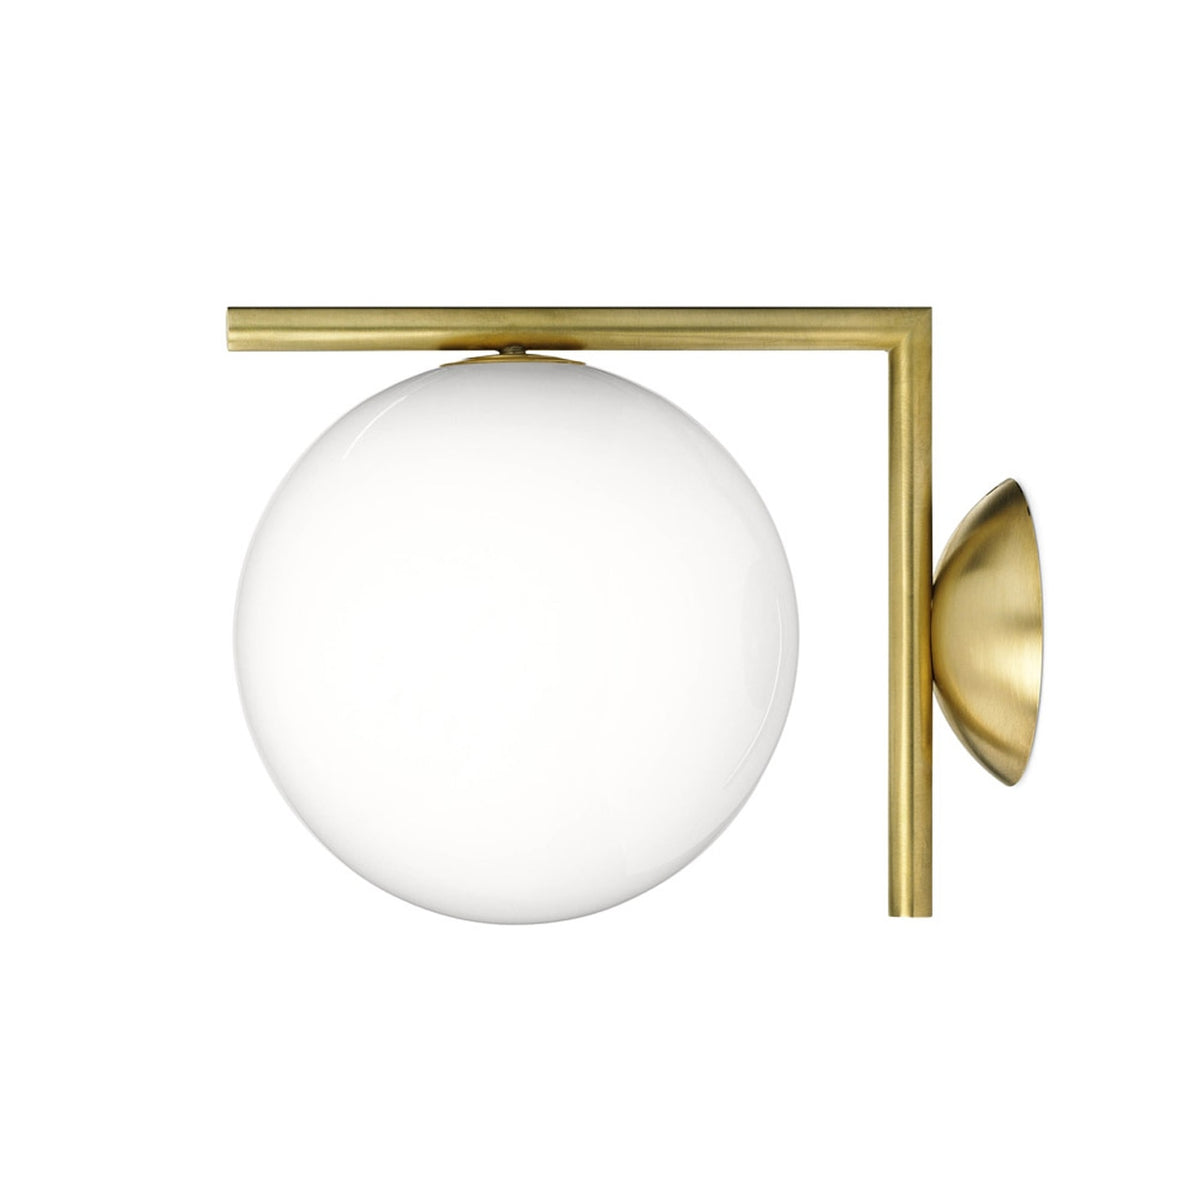 IC Lights C/W - Ceiling Wall Sconce In Brass or Chrome